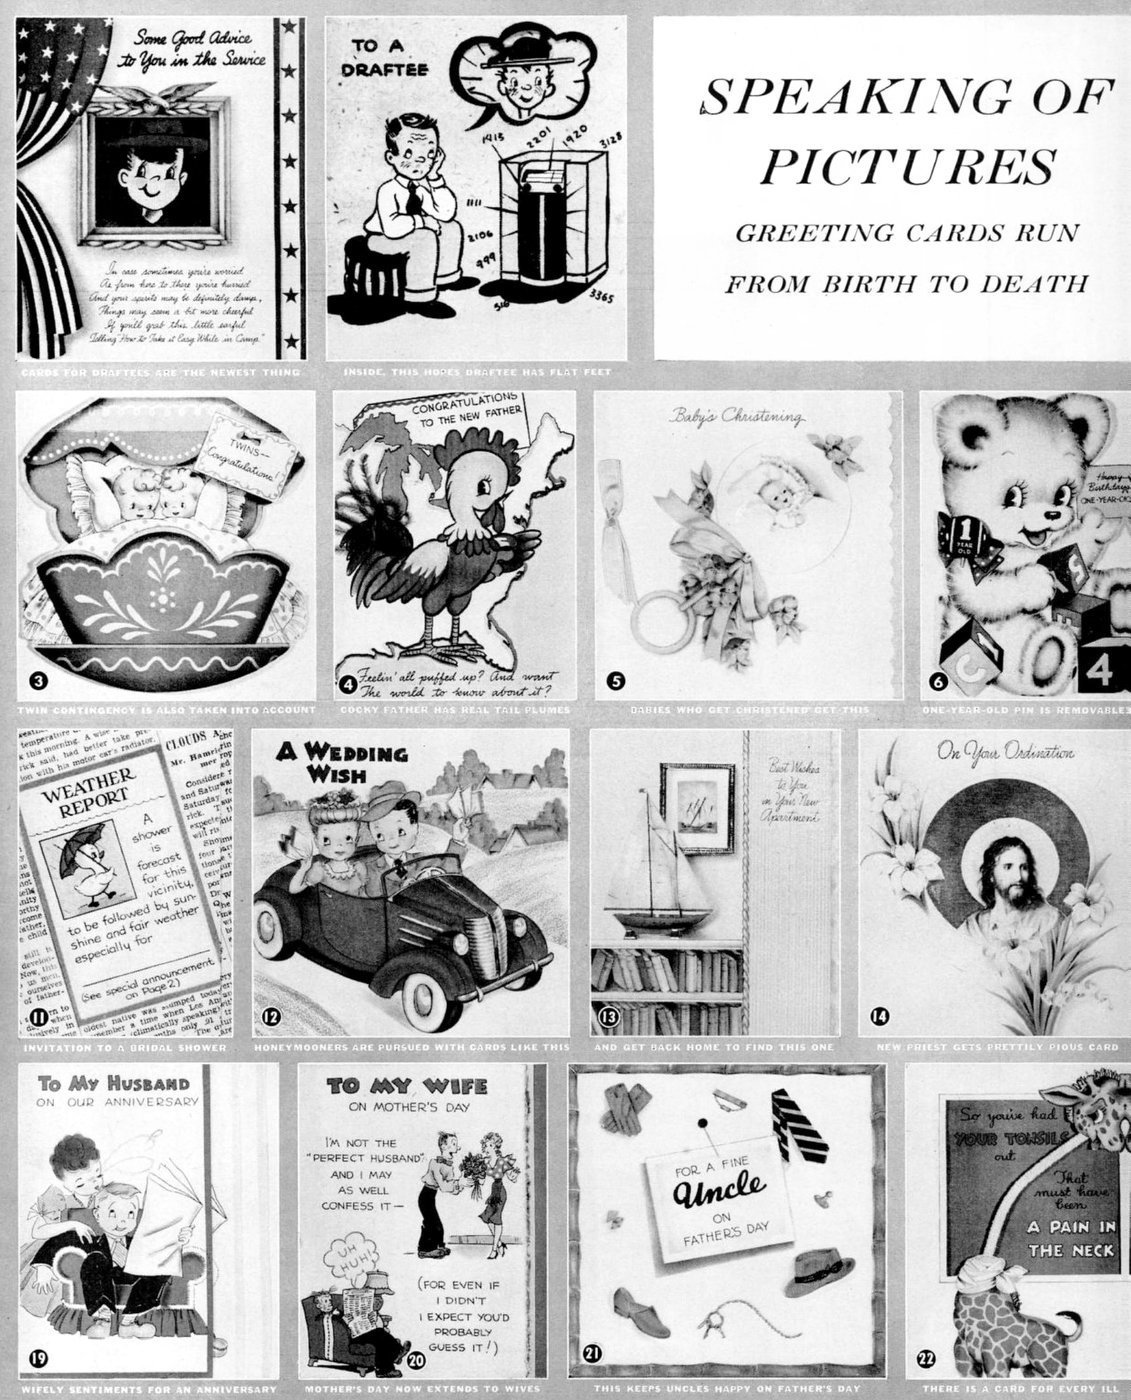 Vintage greeting cards from 1941